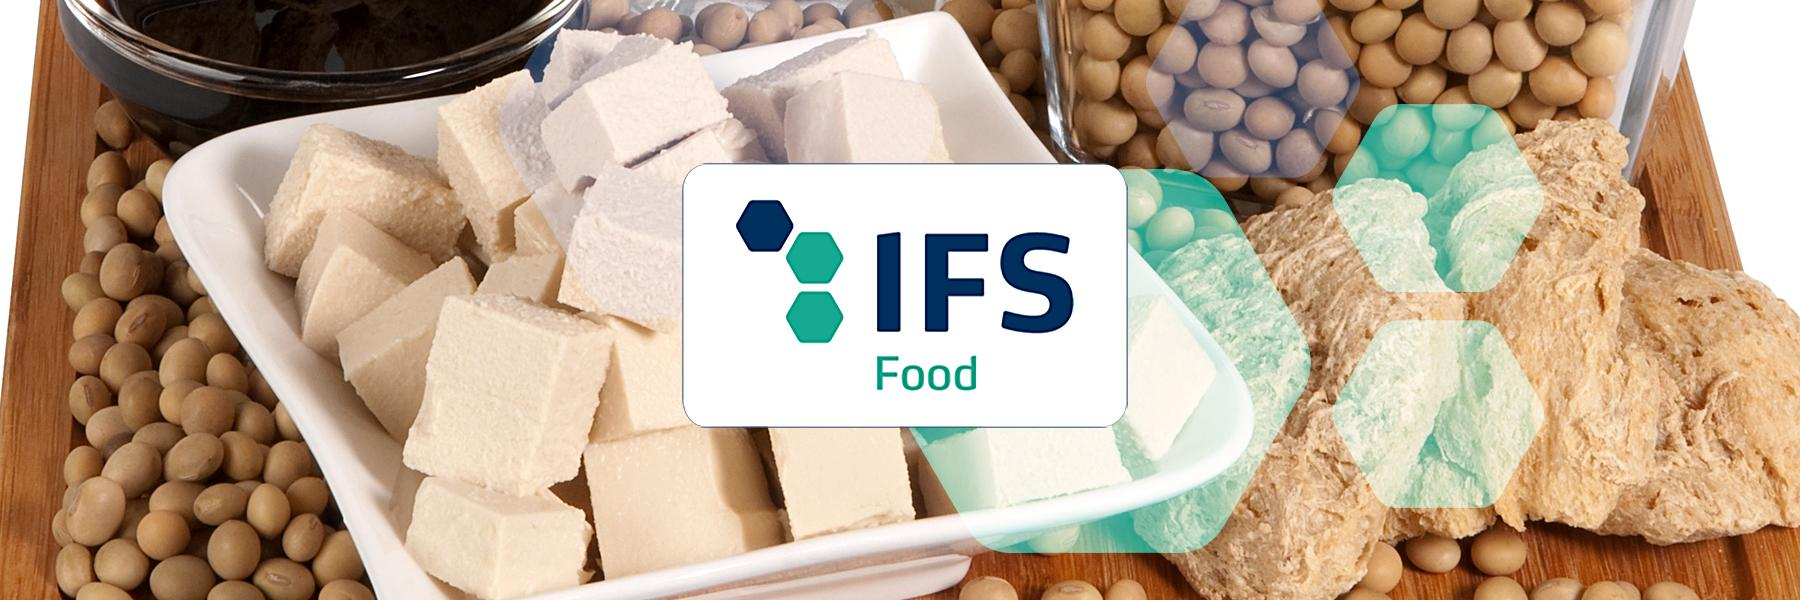 Soria Natural obtains the IFS Food Certificate